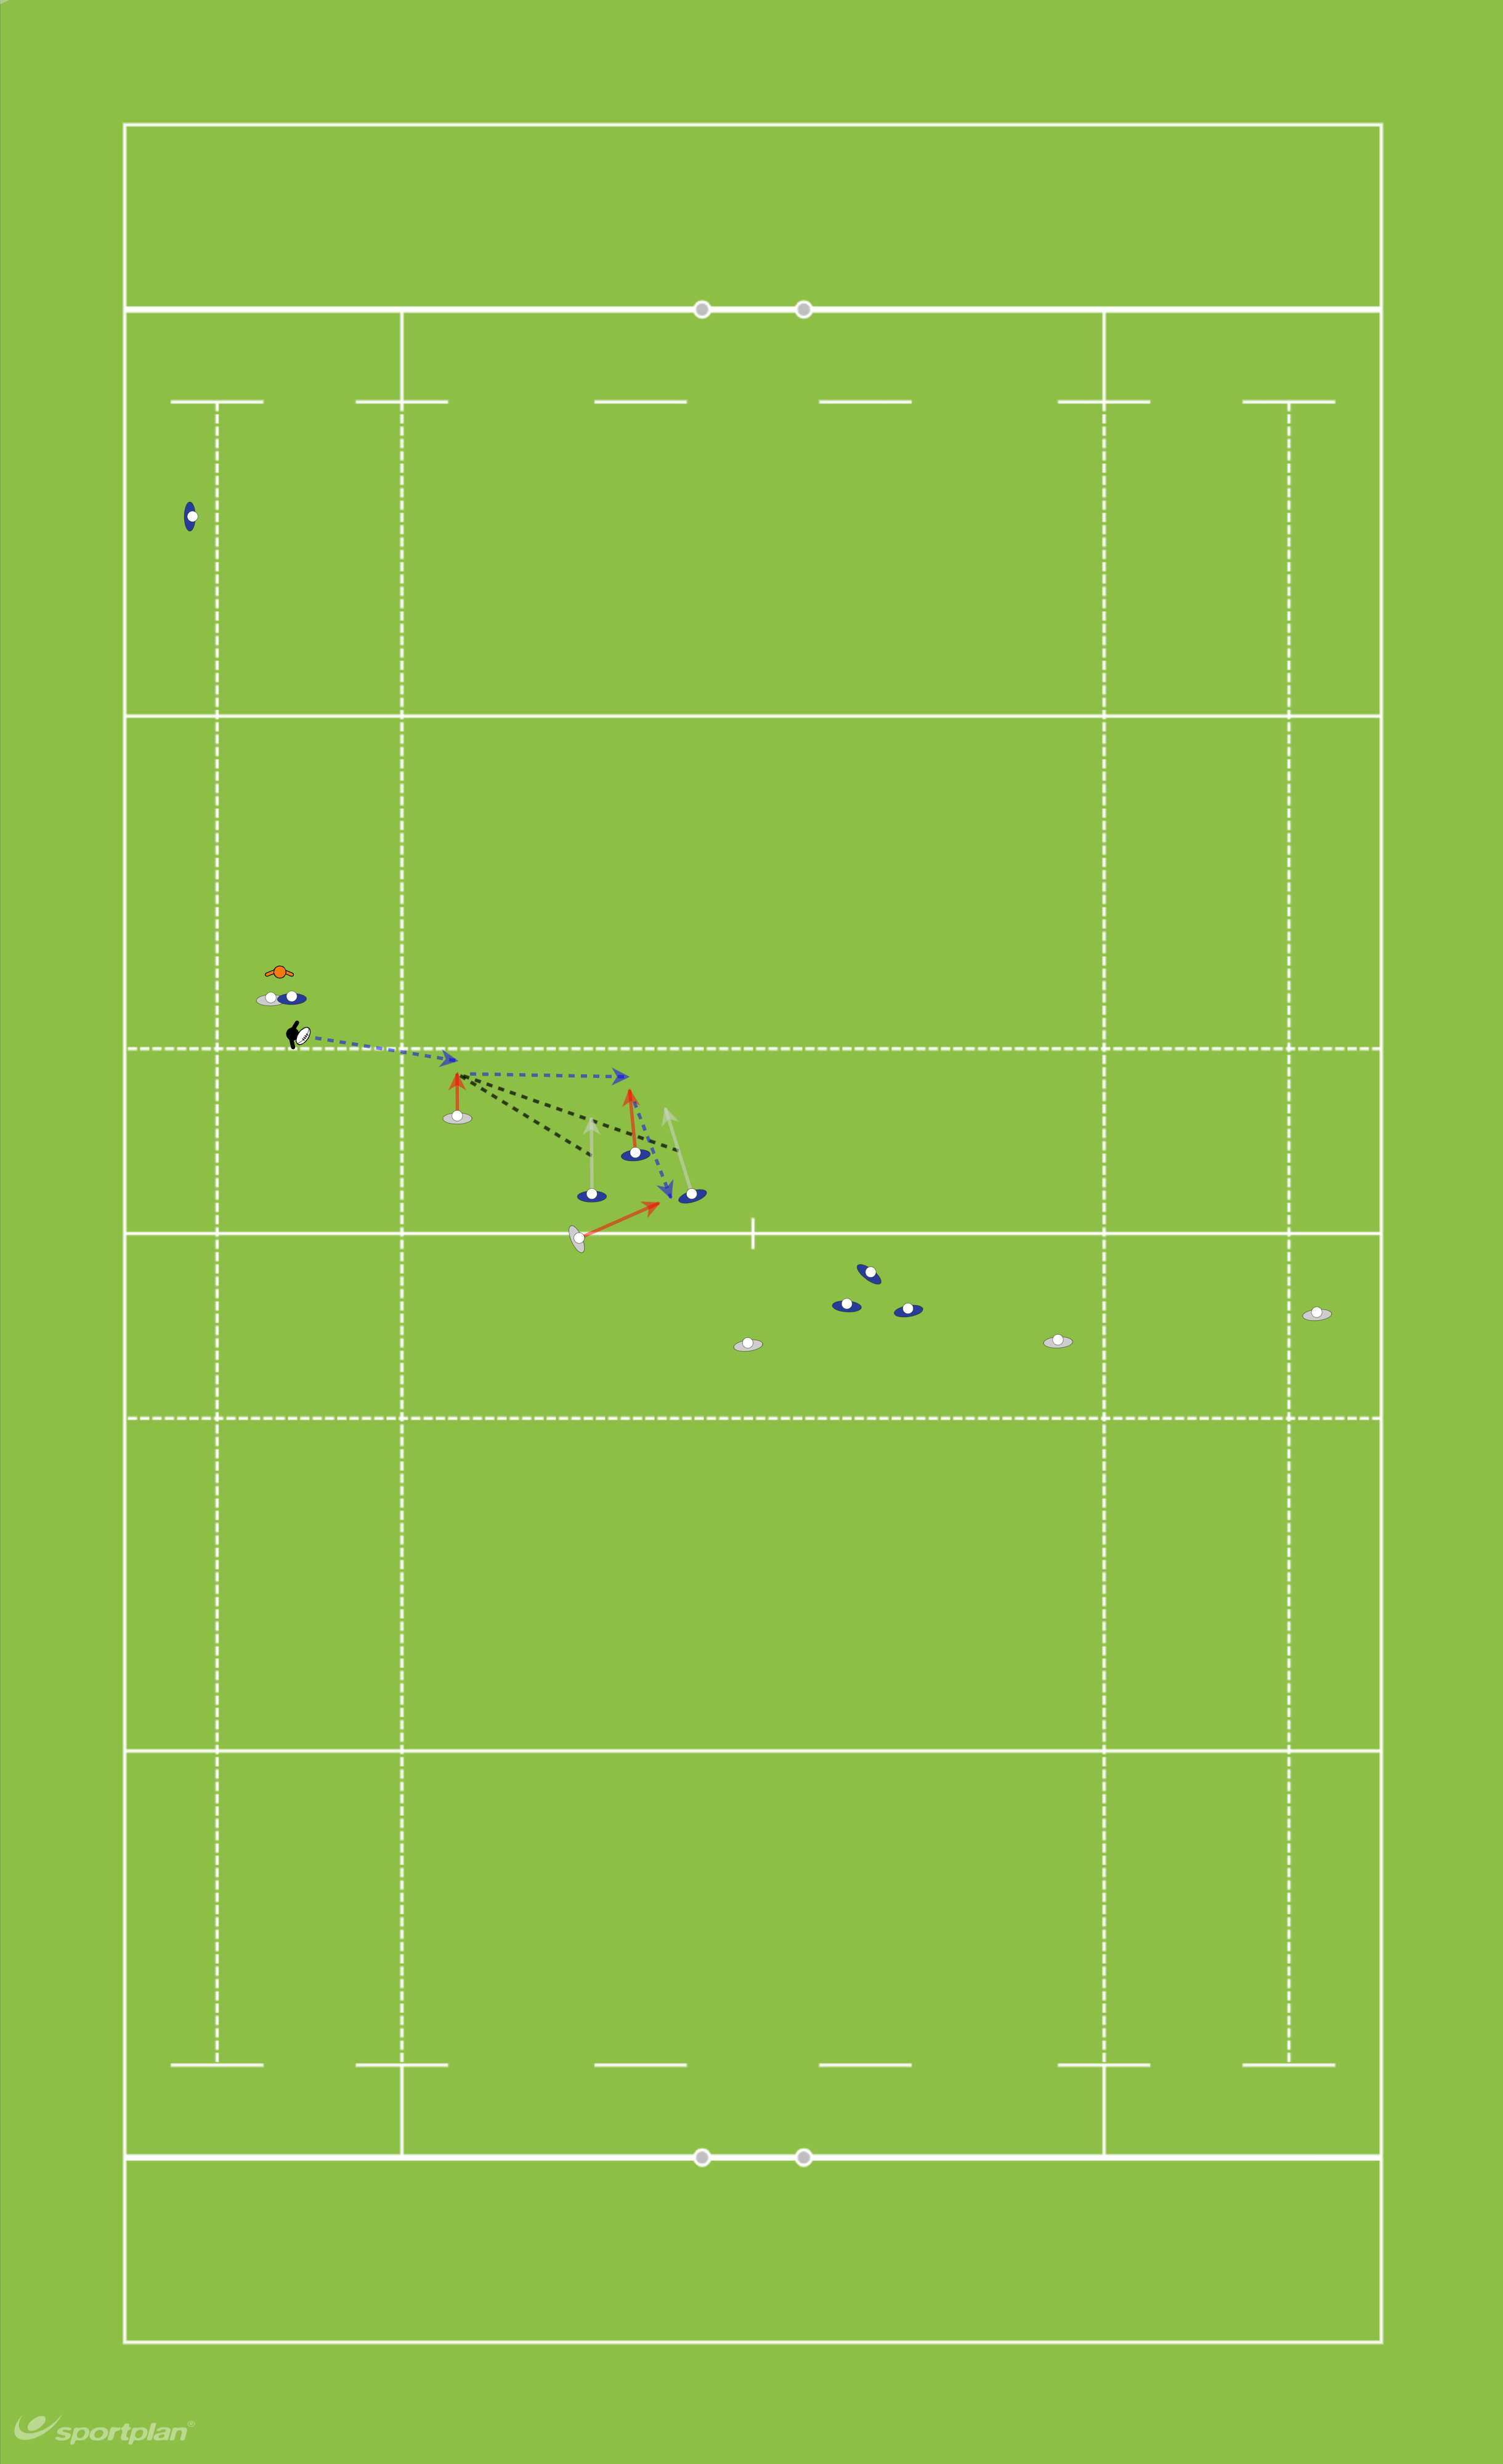 Copy of 1 3 3 1 Set up (B)- CarryRugby Drills Coaching